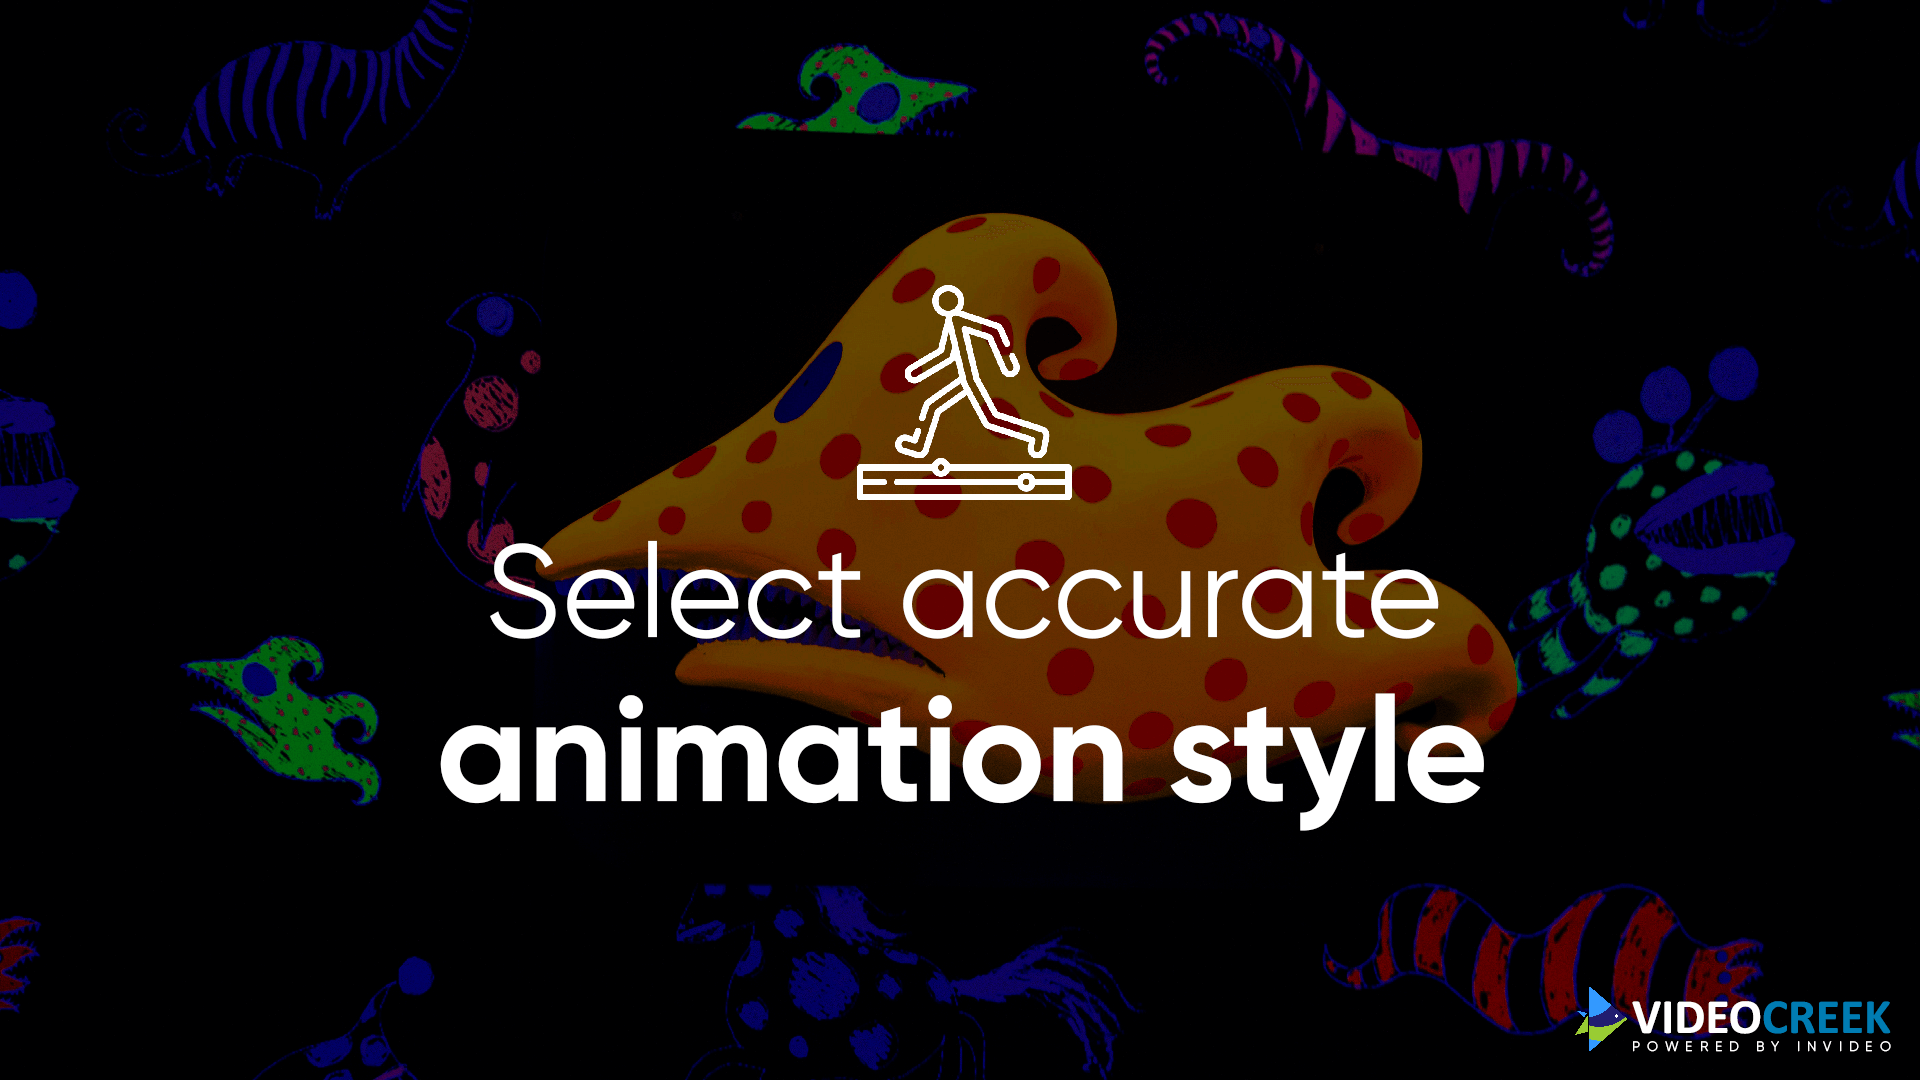 Apply an apt animation style